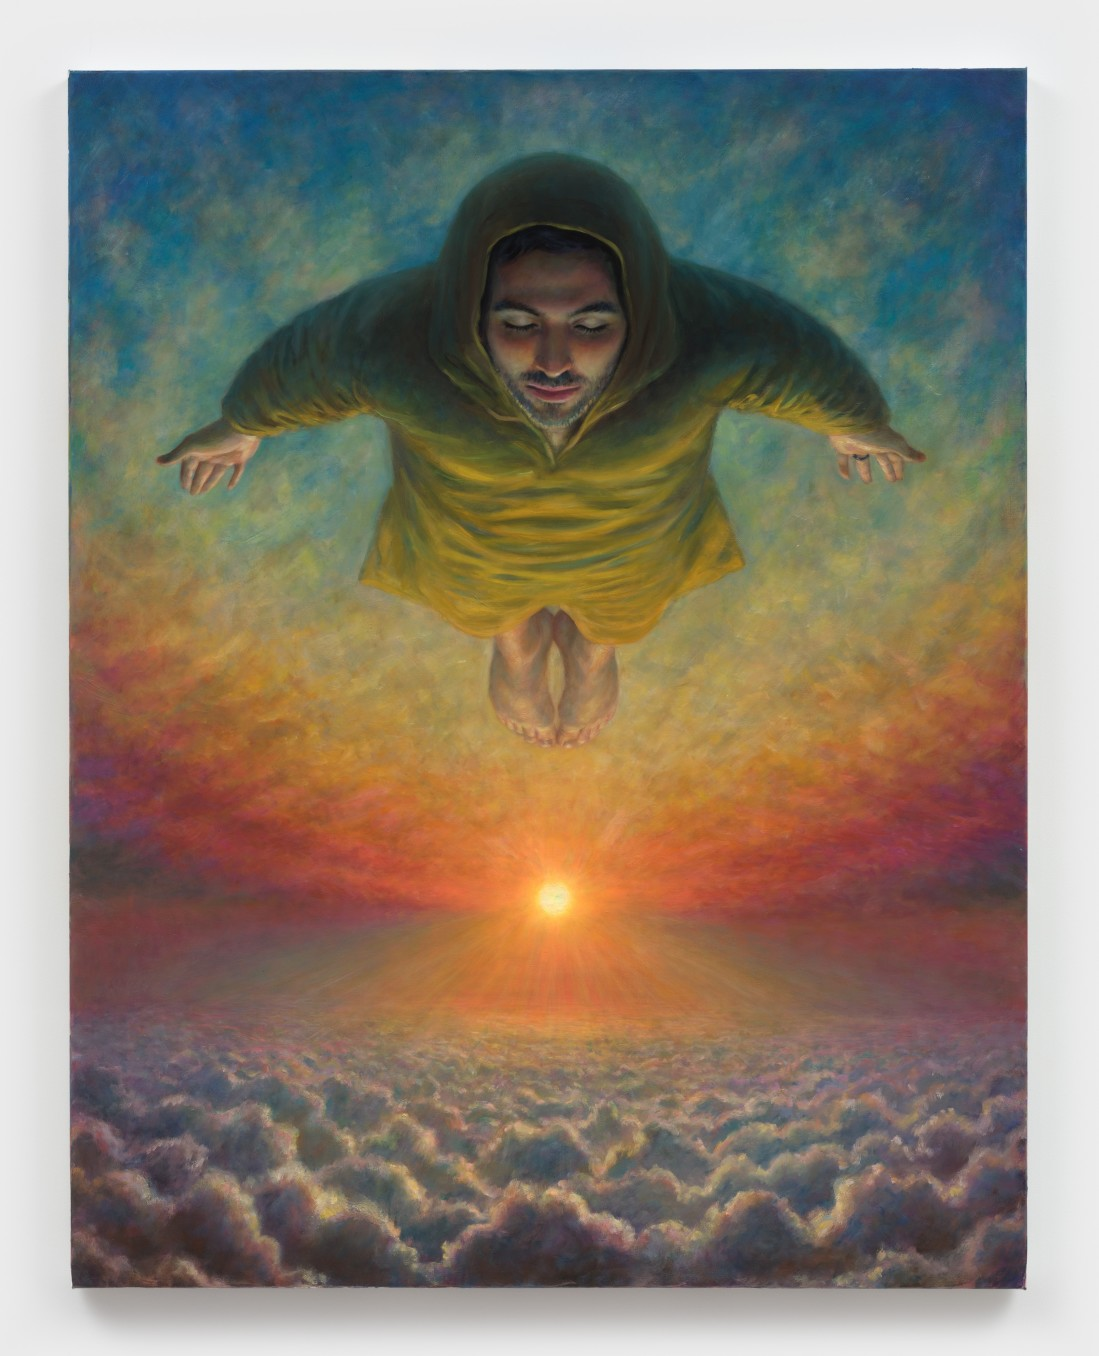 flying dream (self and sun), 2020 Oil on linen 116.8 x 91.4 cm 46 x 36 in